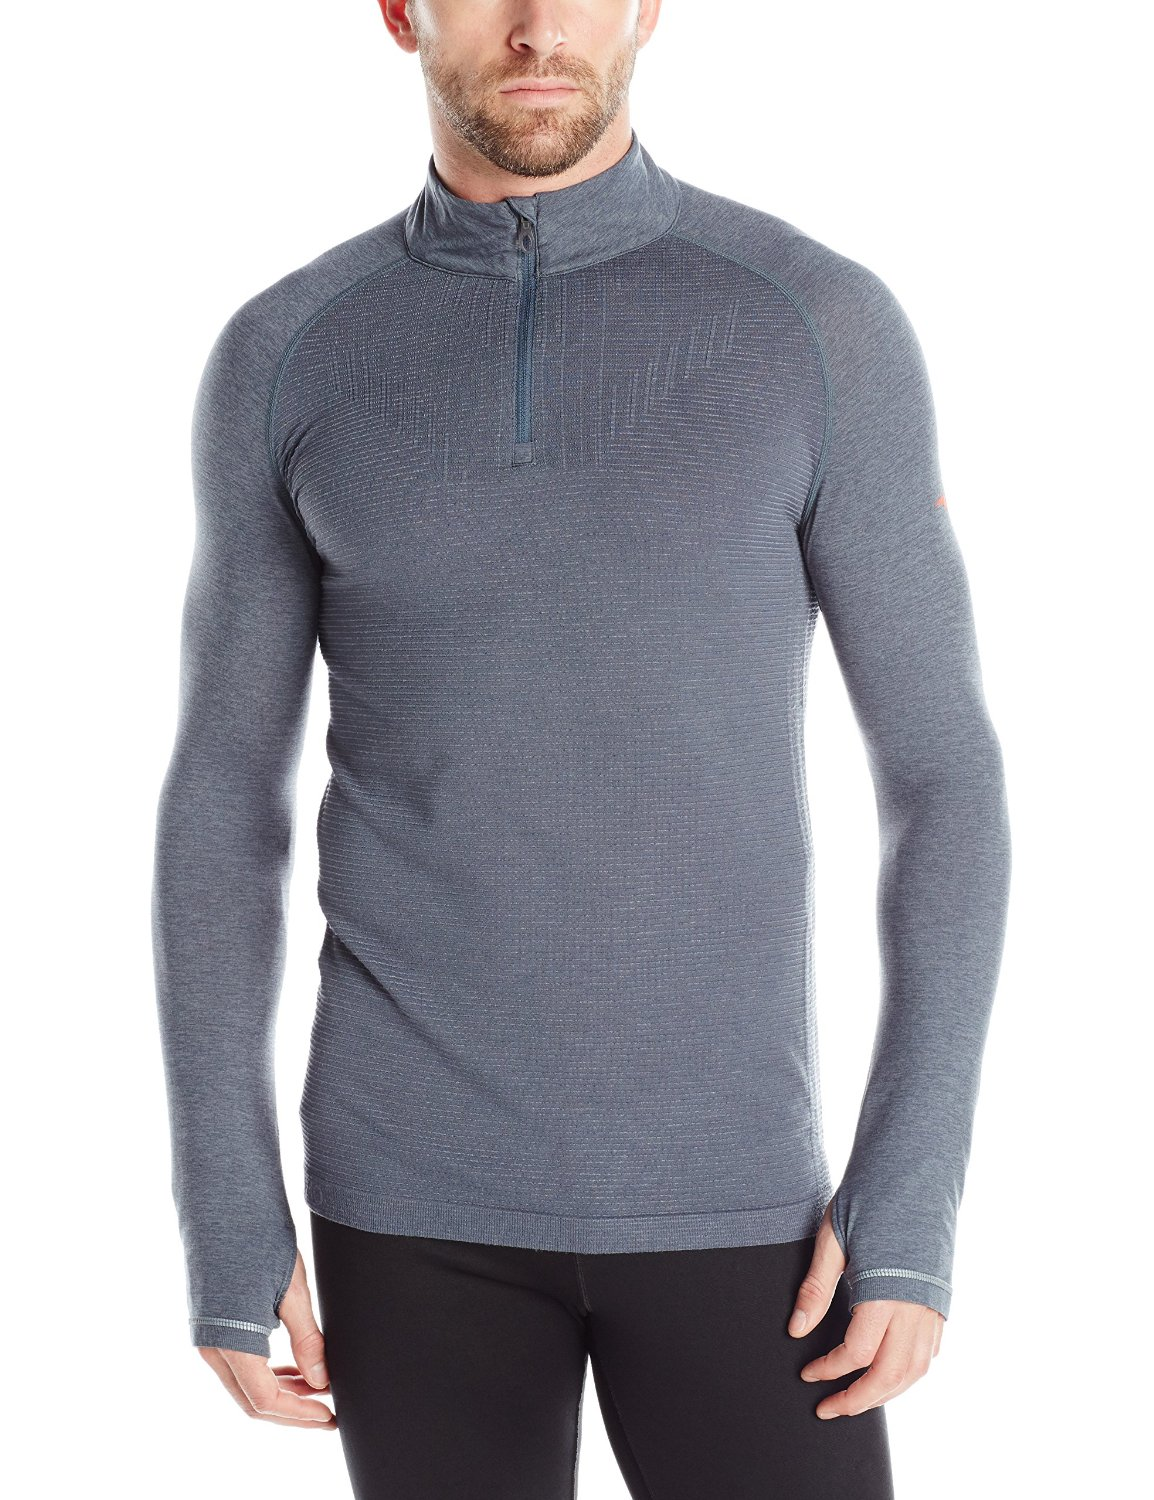 Mizuno Running Men's Breath Thermo Seamless Half Zip Top